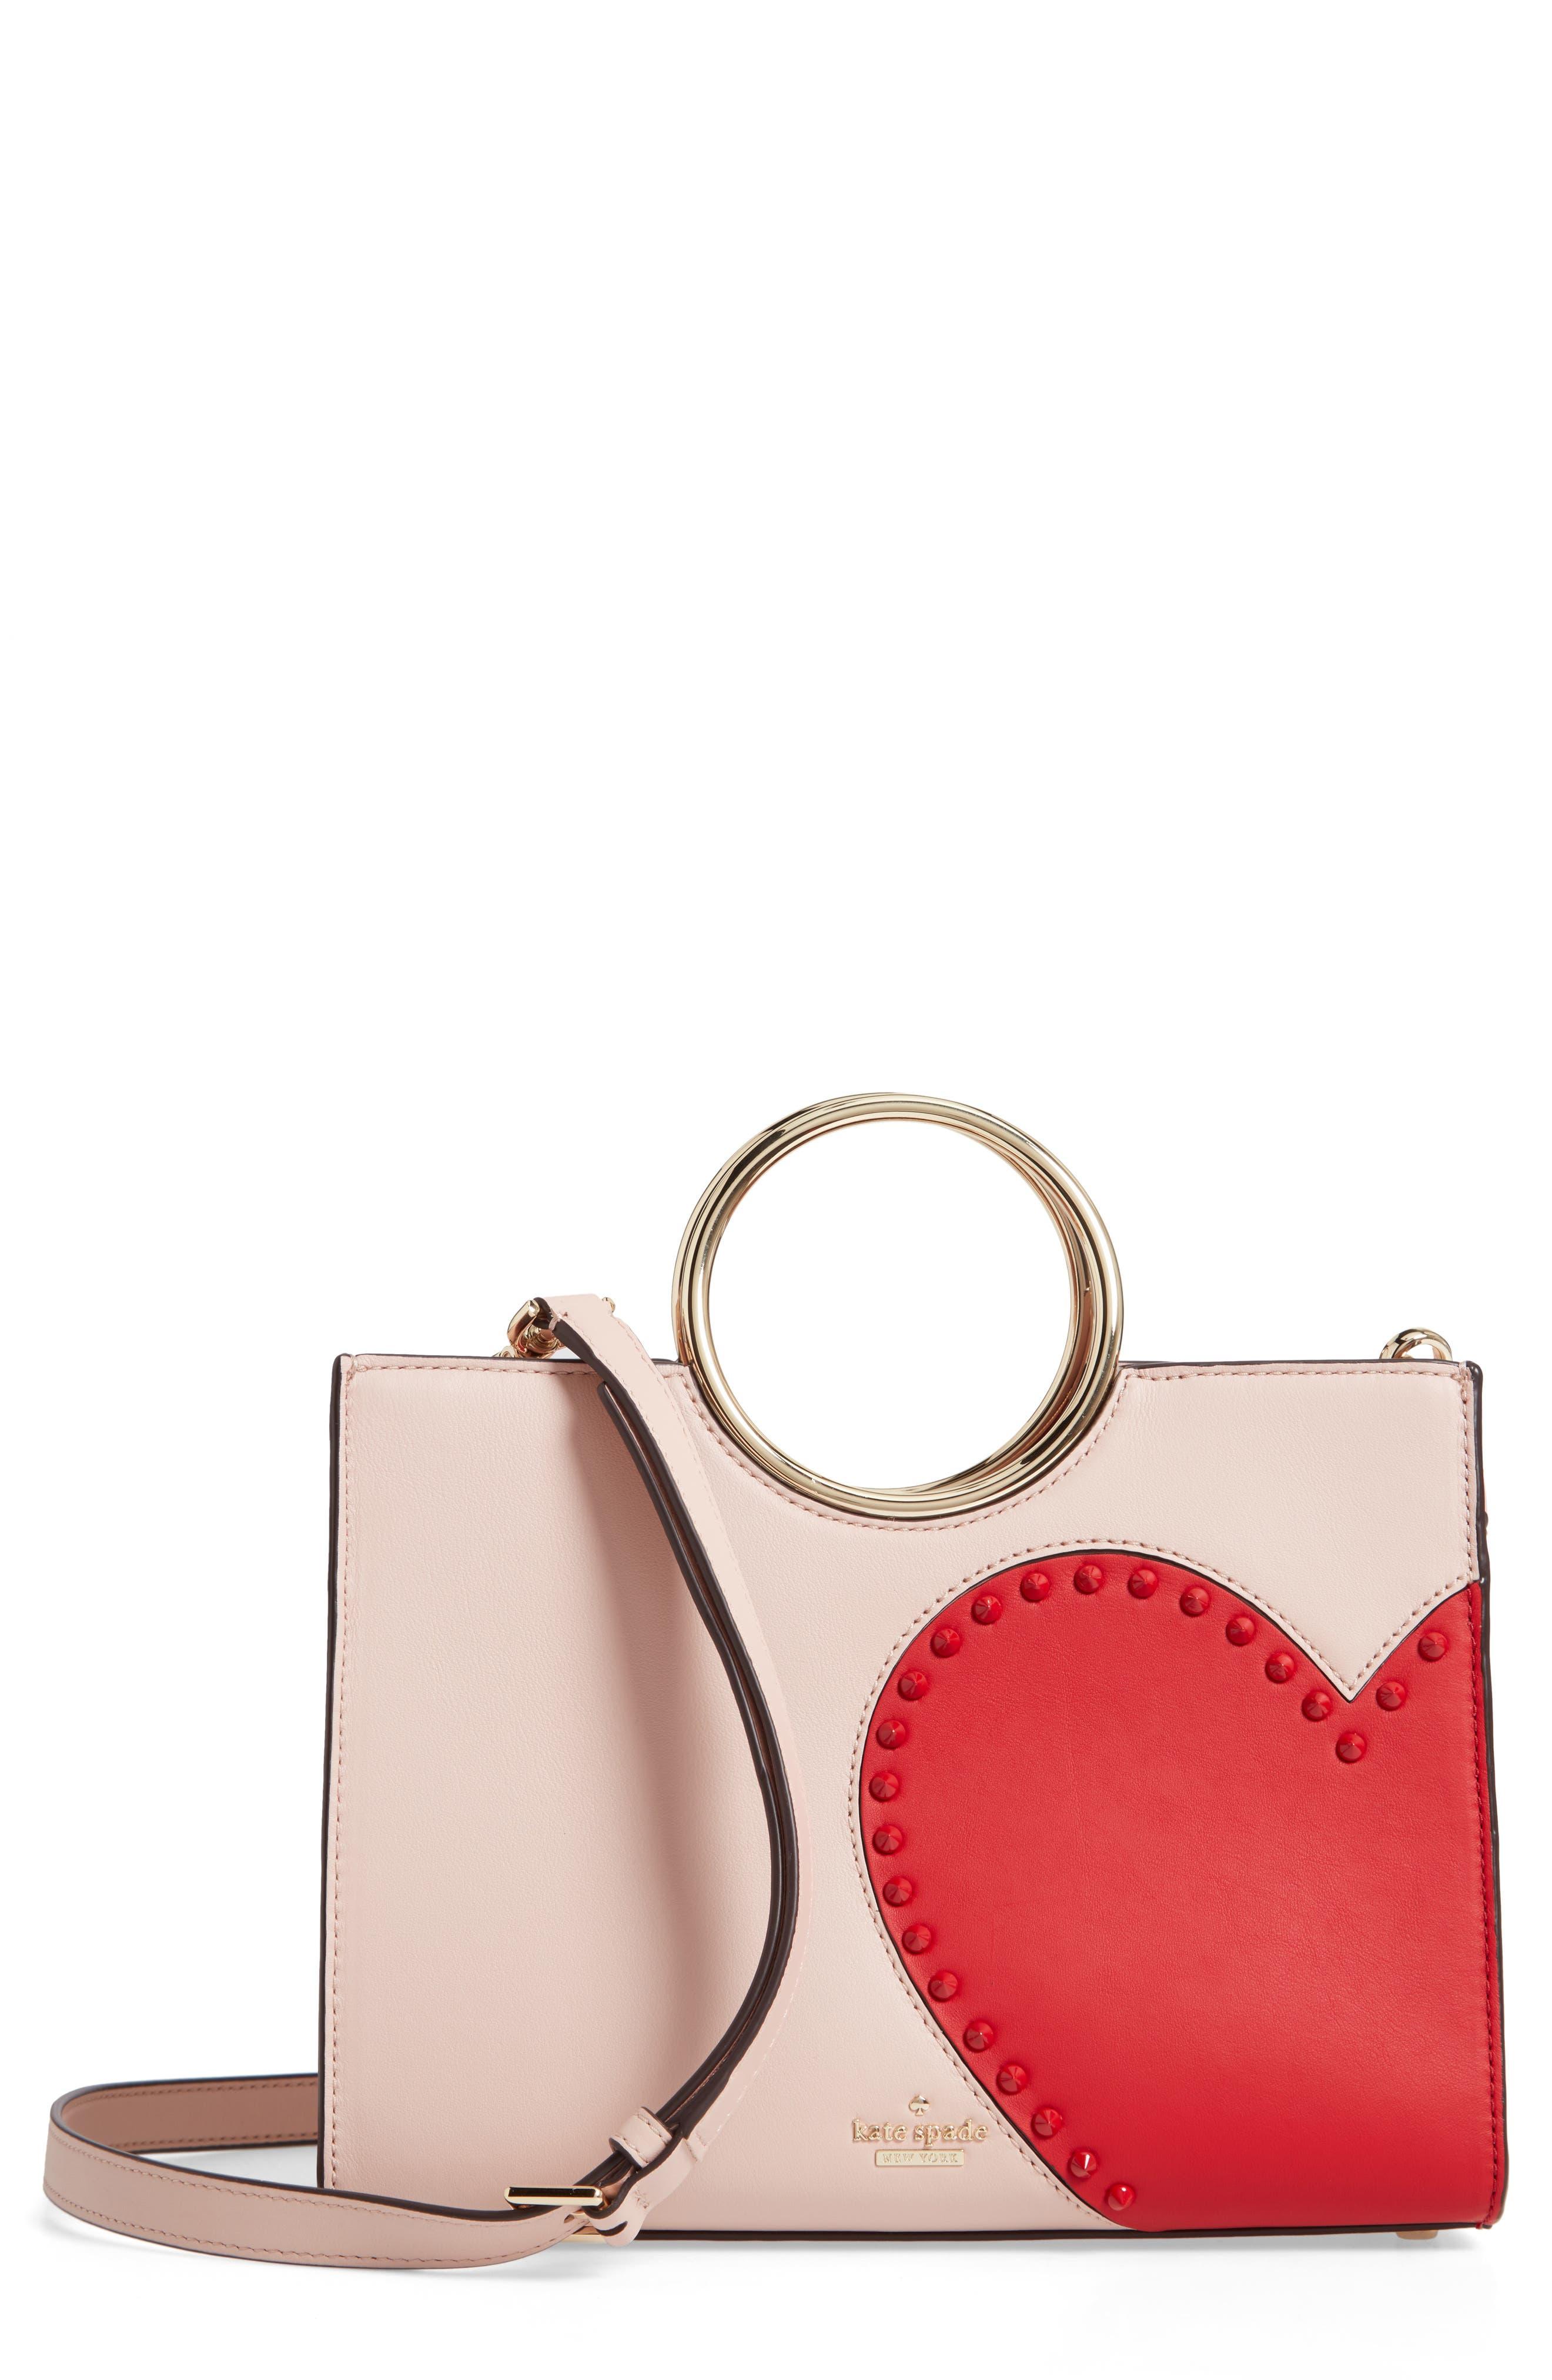 KATE SPADE NEW YORK heart it - sam leather satchel, Main, color, 650